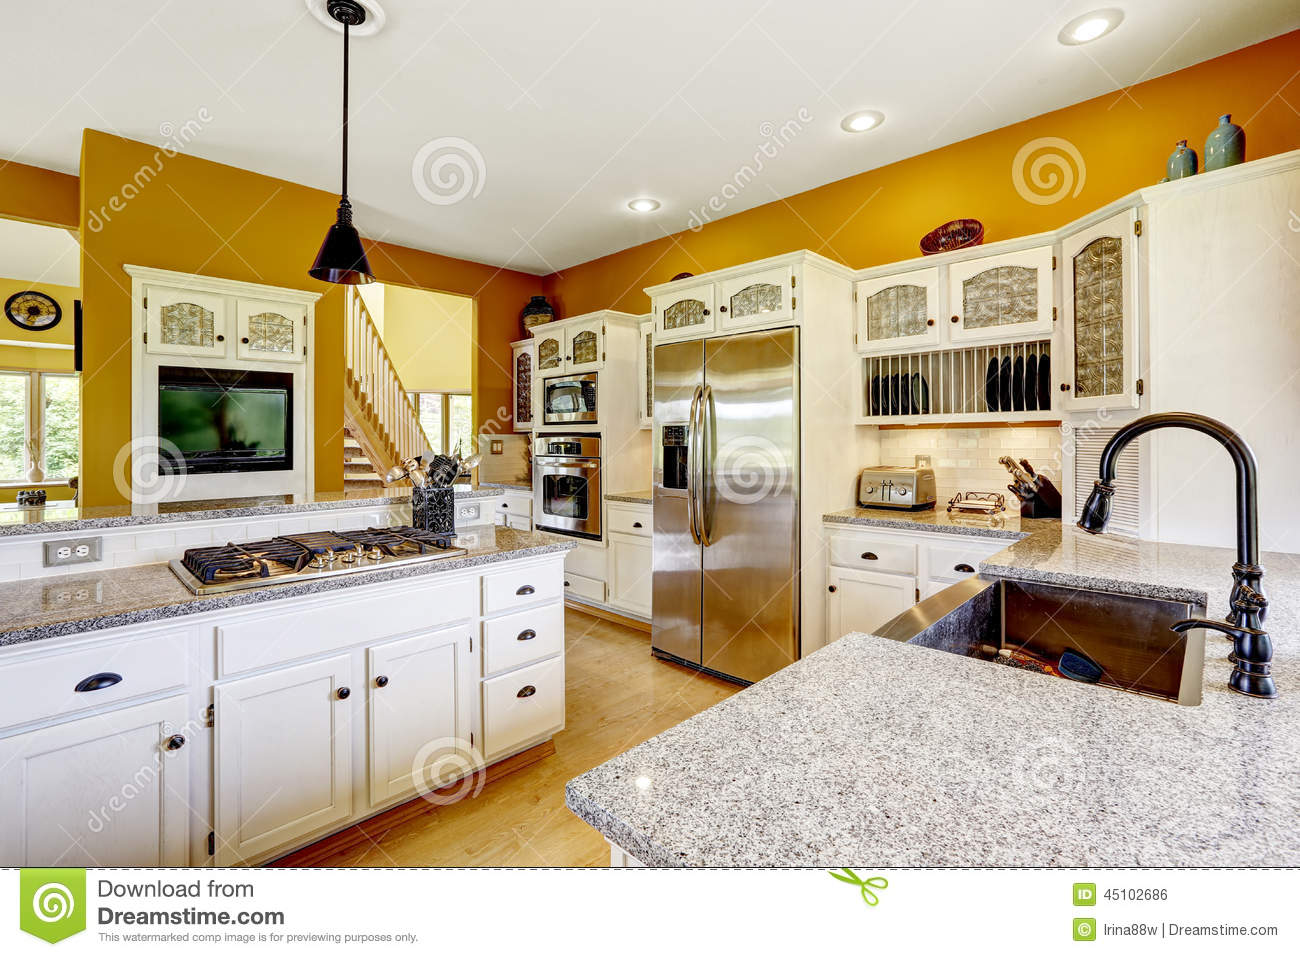 Photo Interieur De Maison Of Int Rieur De Maison De Ferme Int Rieur De Luxe De Pi Ce De Cuisine Photo Stock Image 45102686